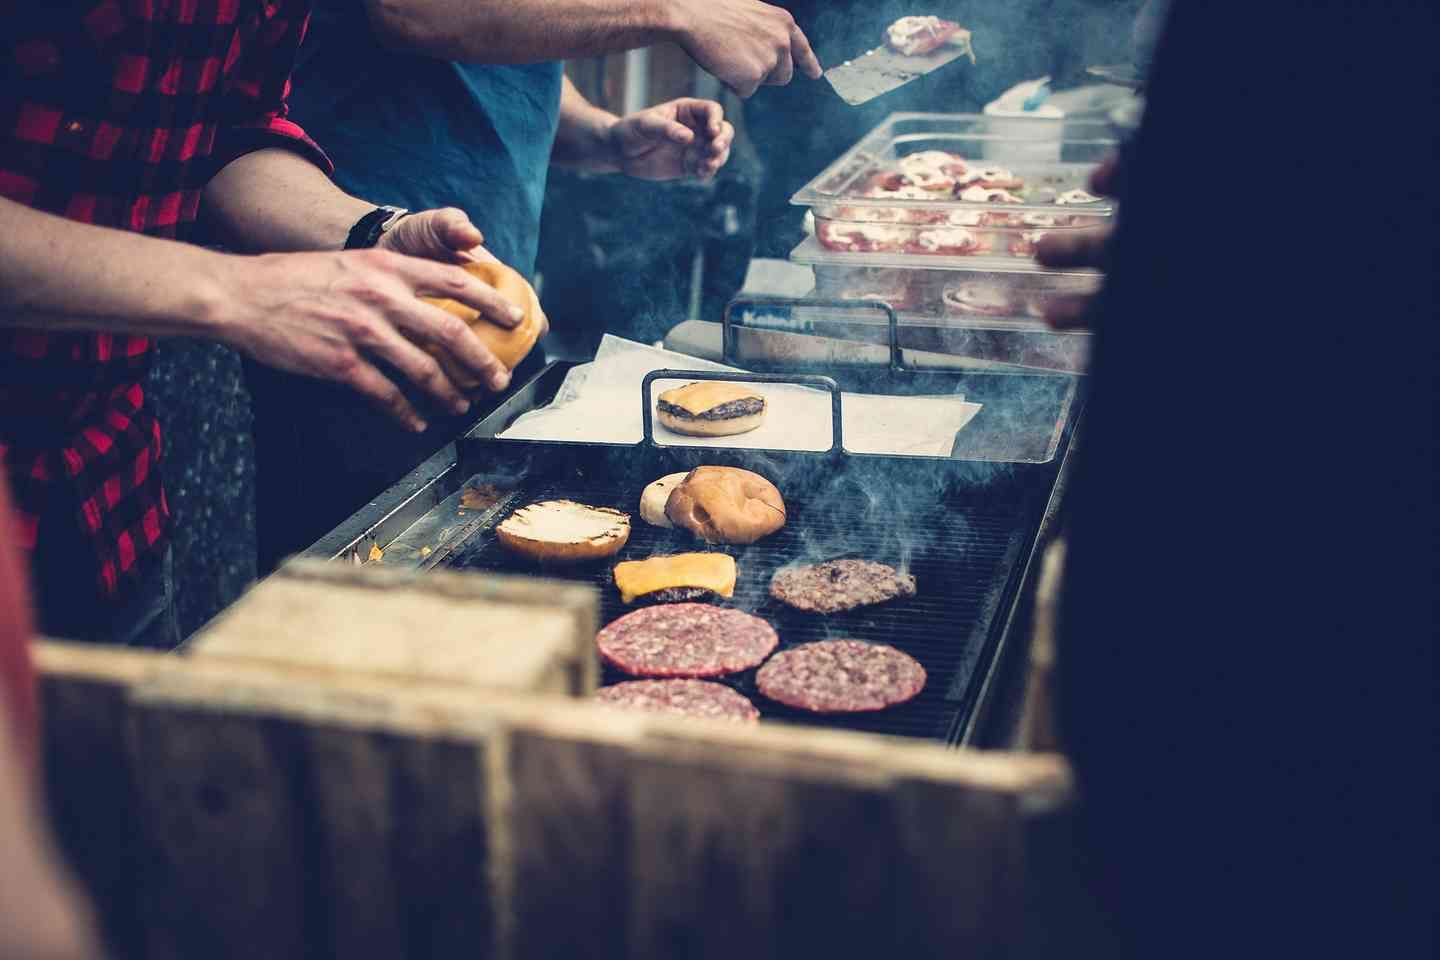 person making burgers on grill